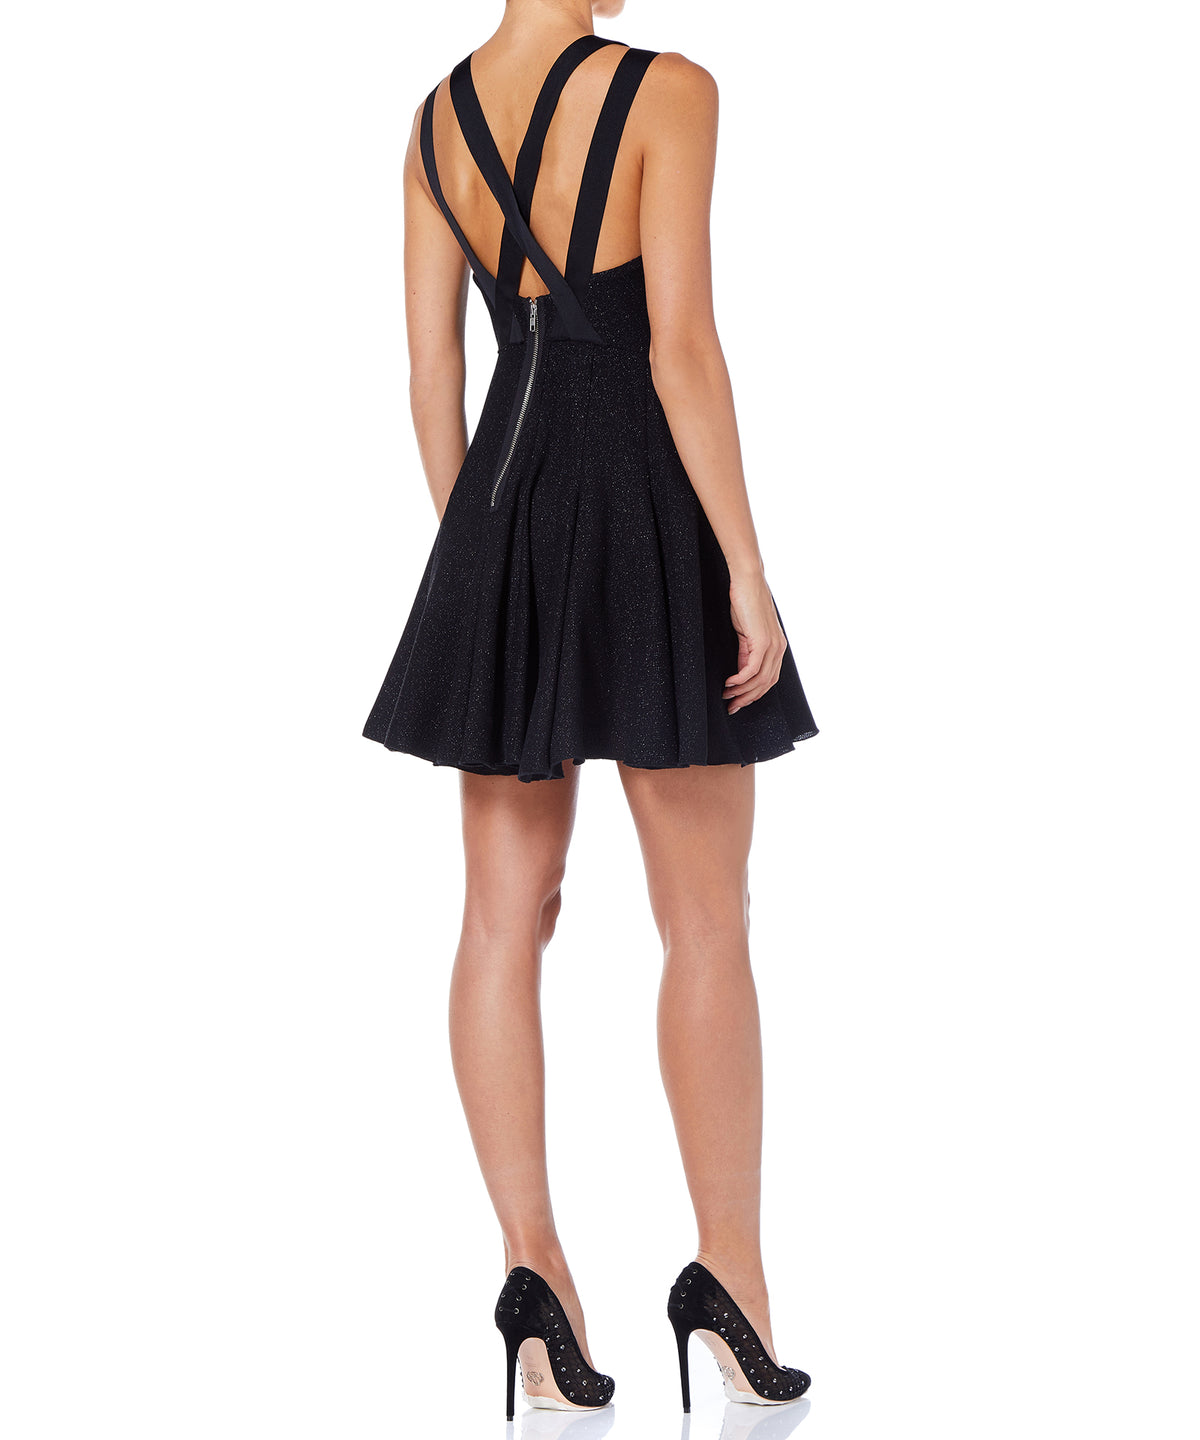 Alex Perry Azura Women Black Dress